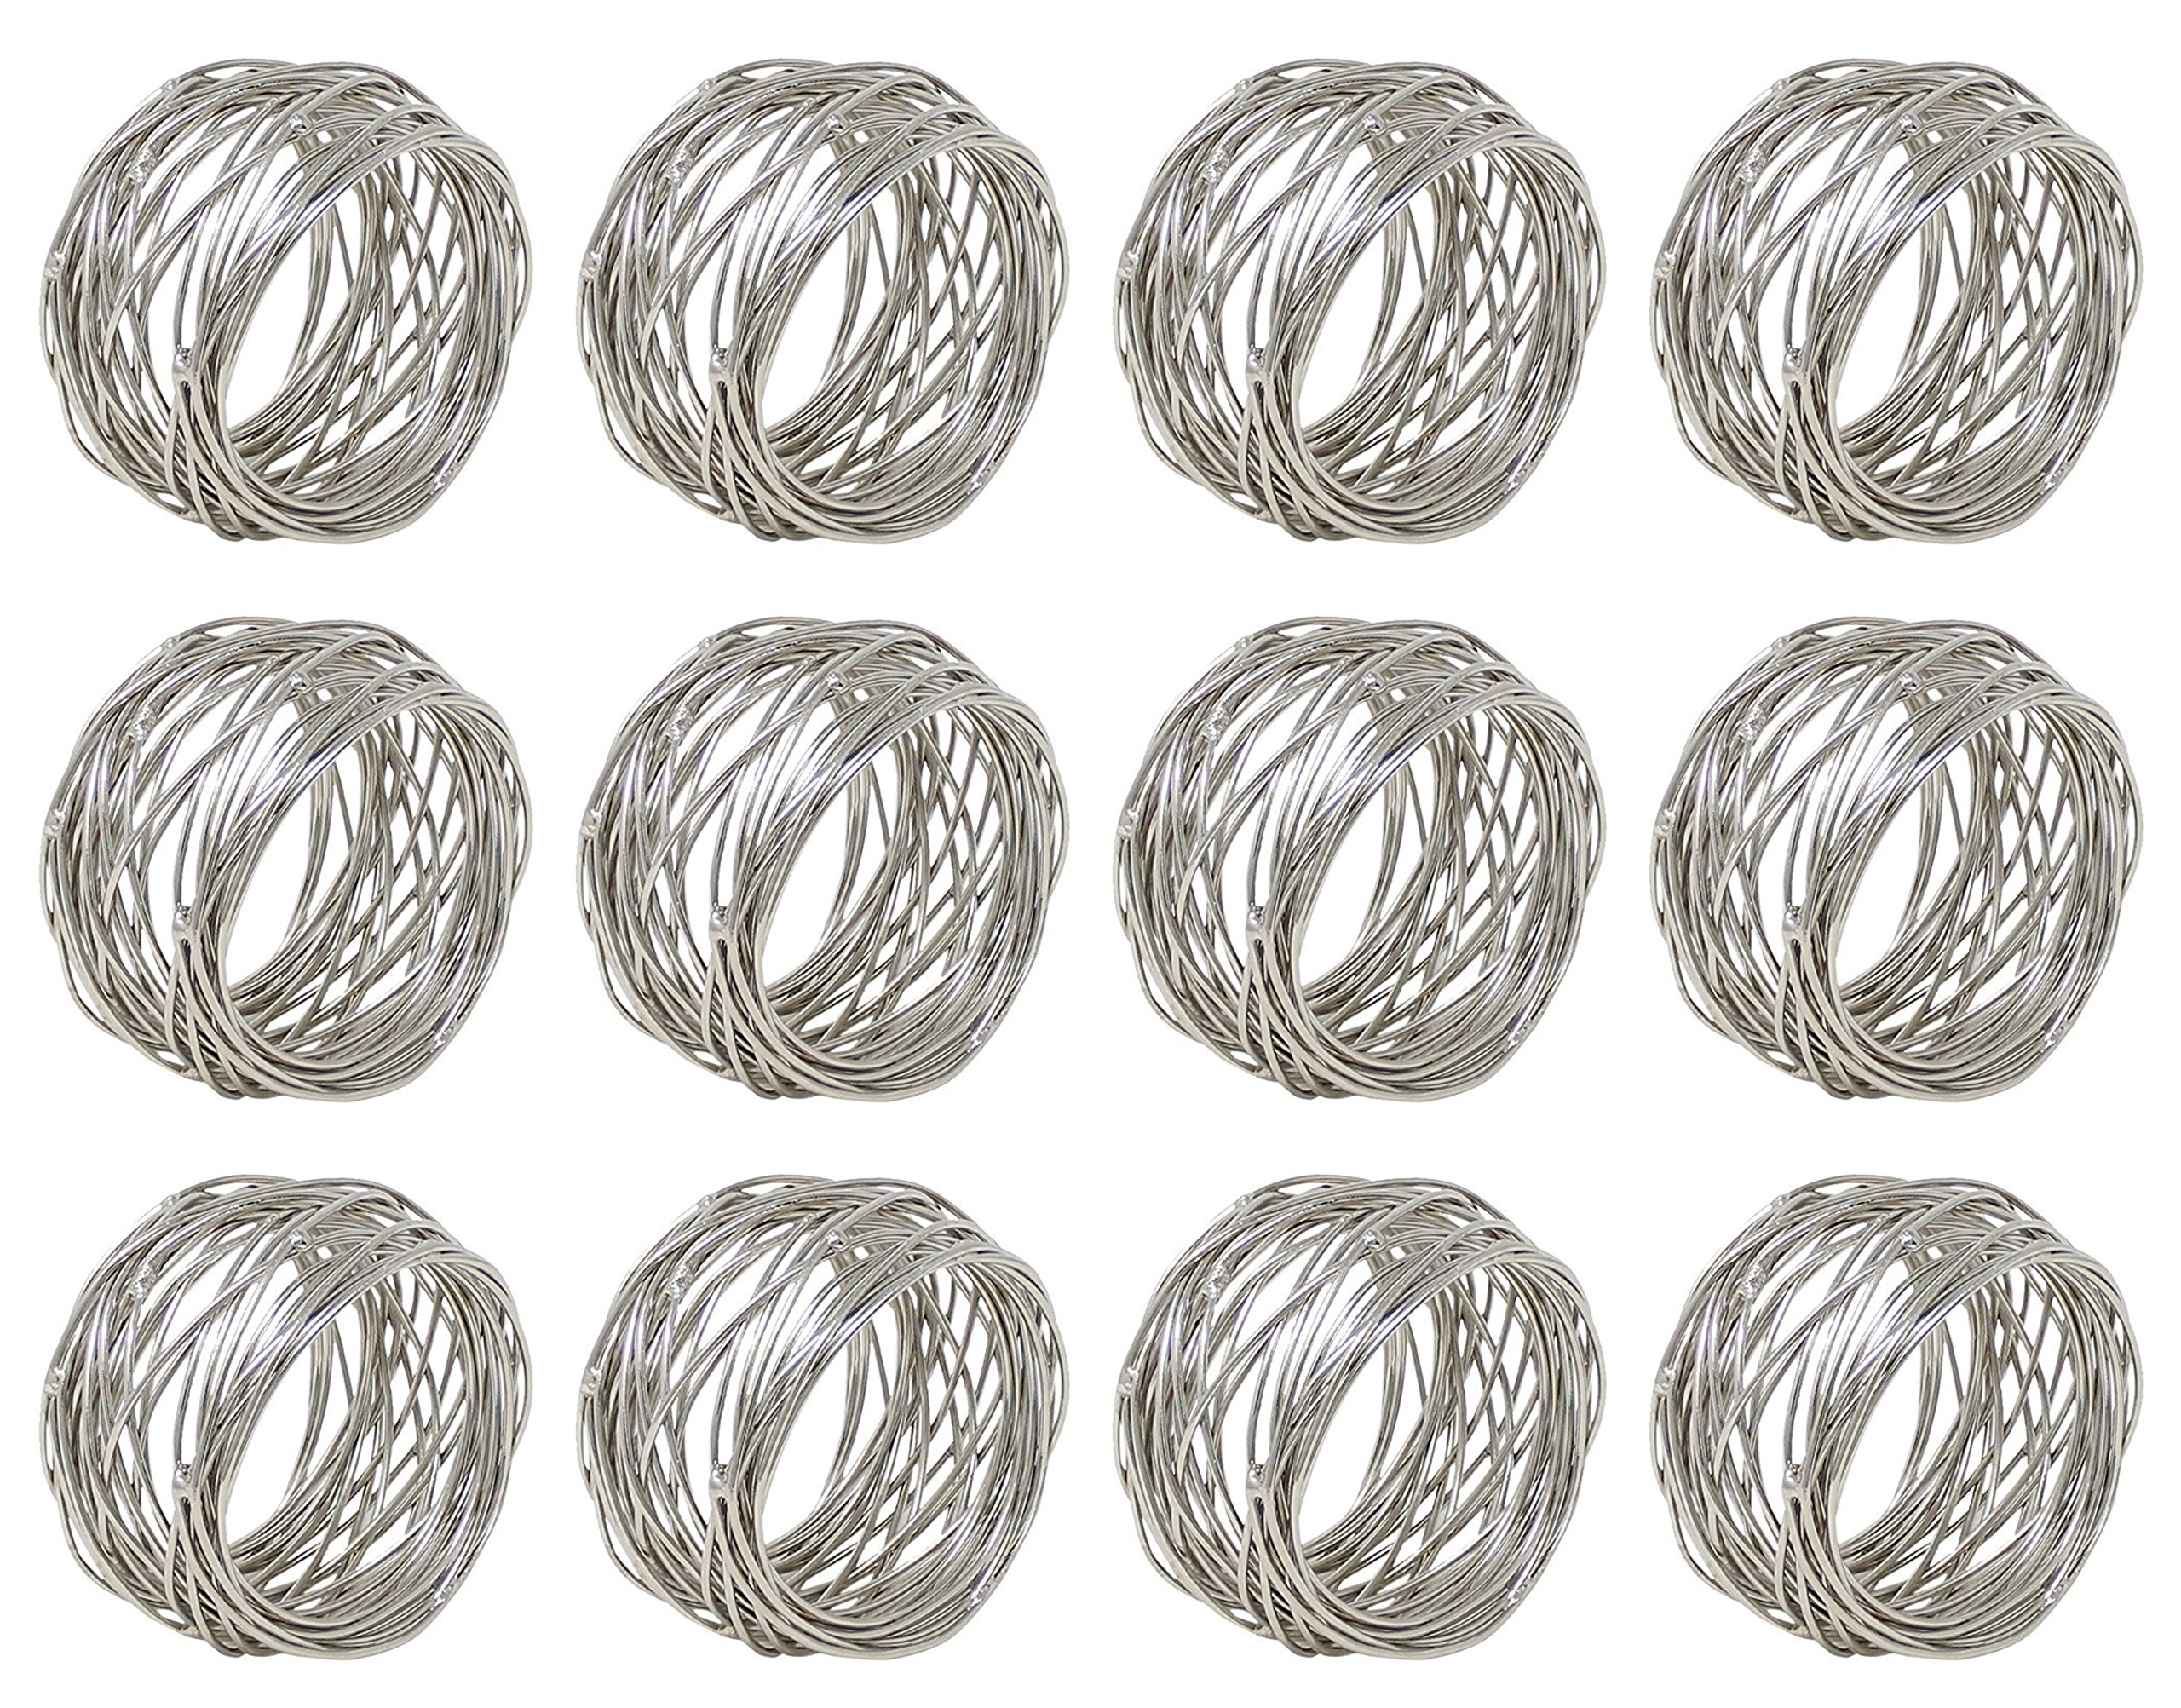 ARN Craft Silver Round Mesh Napkin Rings- Set of 12 for Weddings Dinner Parties or Every Day Use (CW- 07-12)